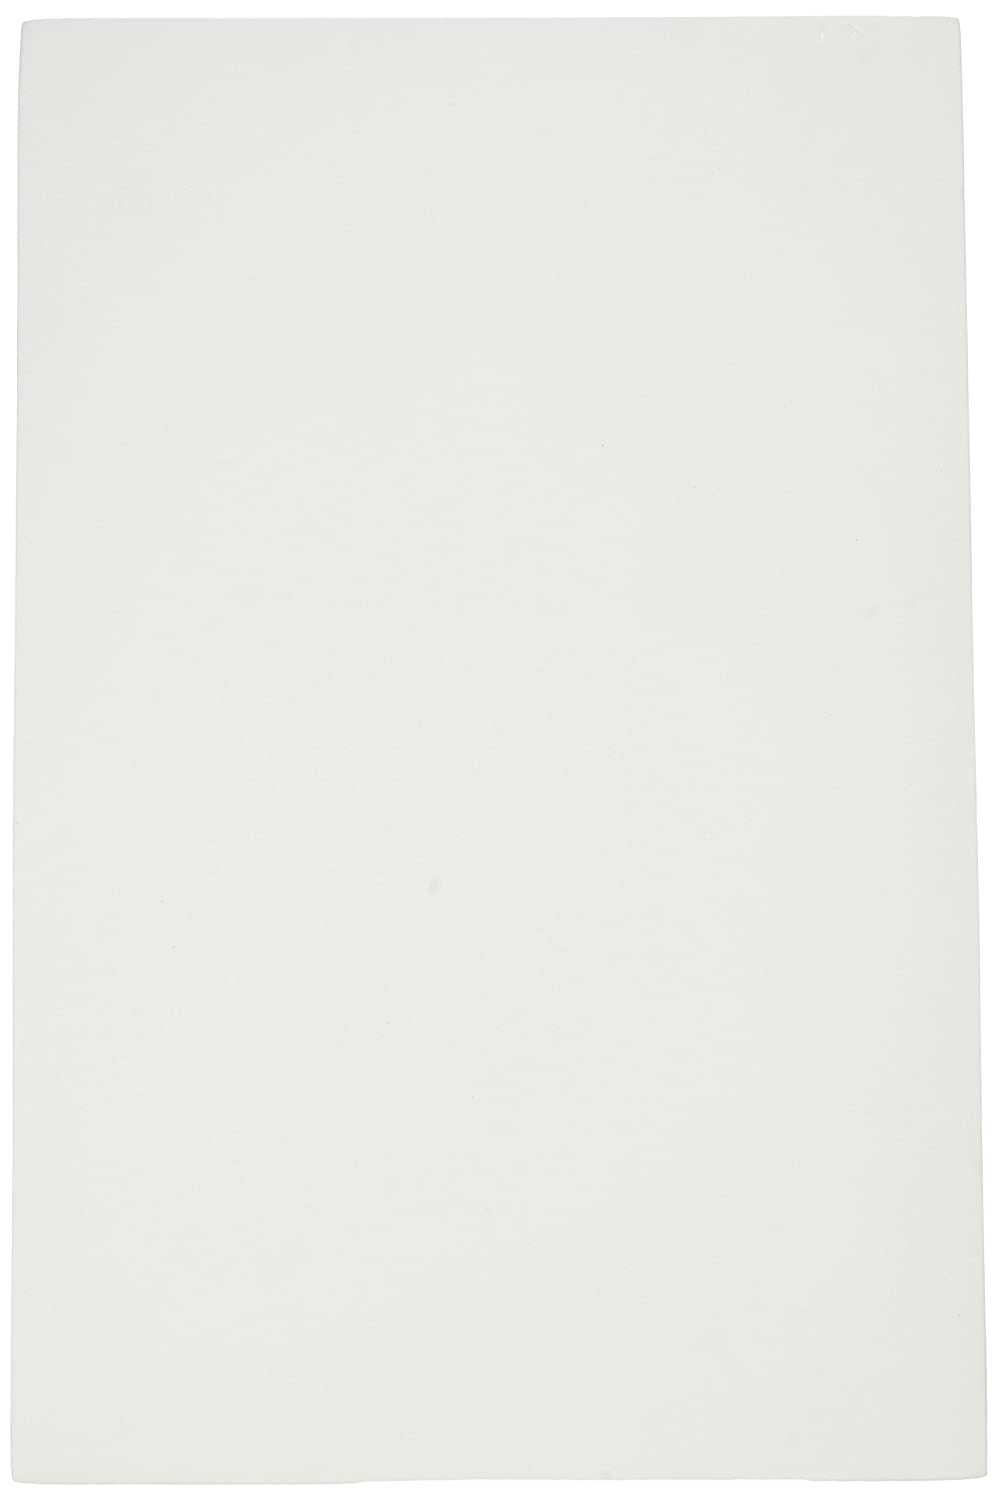 Foam Sheet 12X18 2mm-White 10 per pack Notions - In Network LEPPUSASHME396